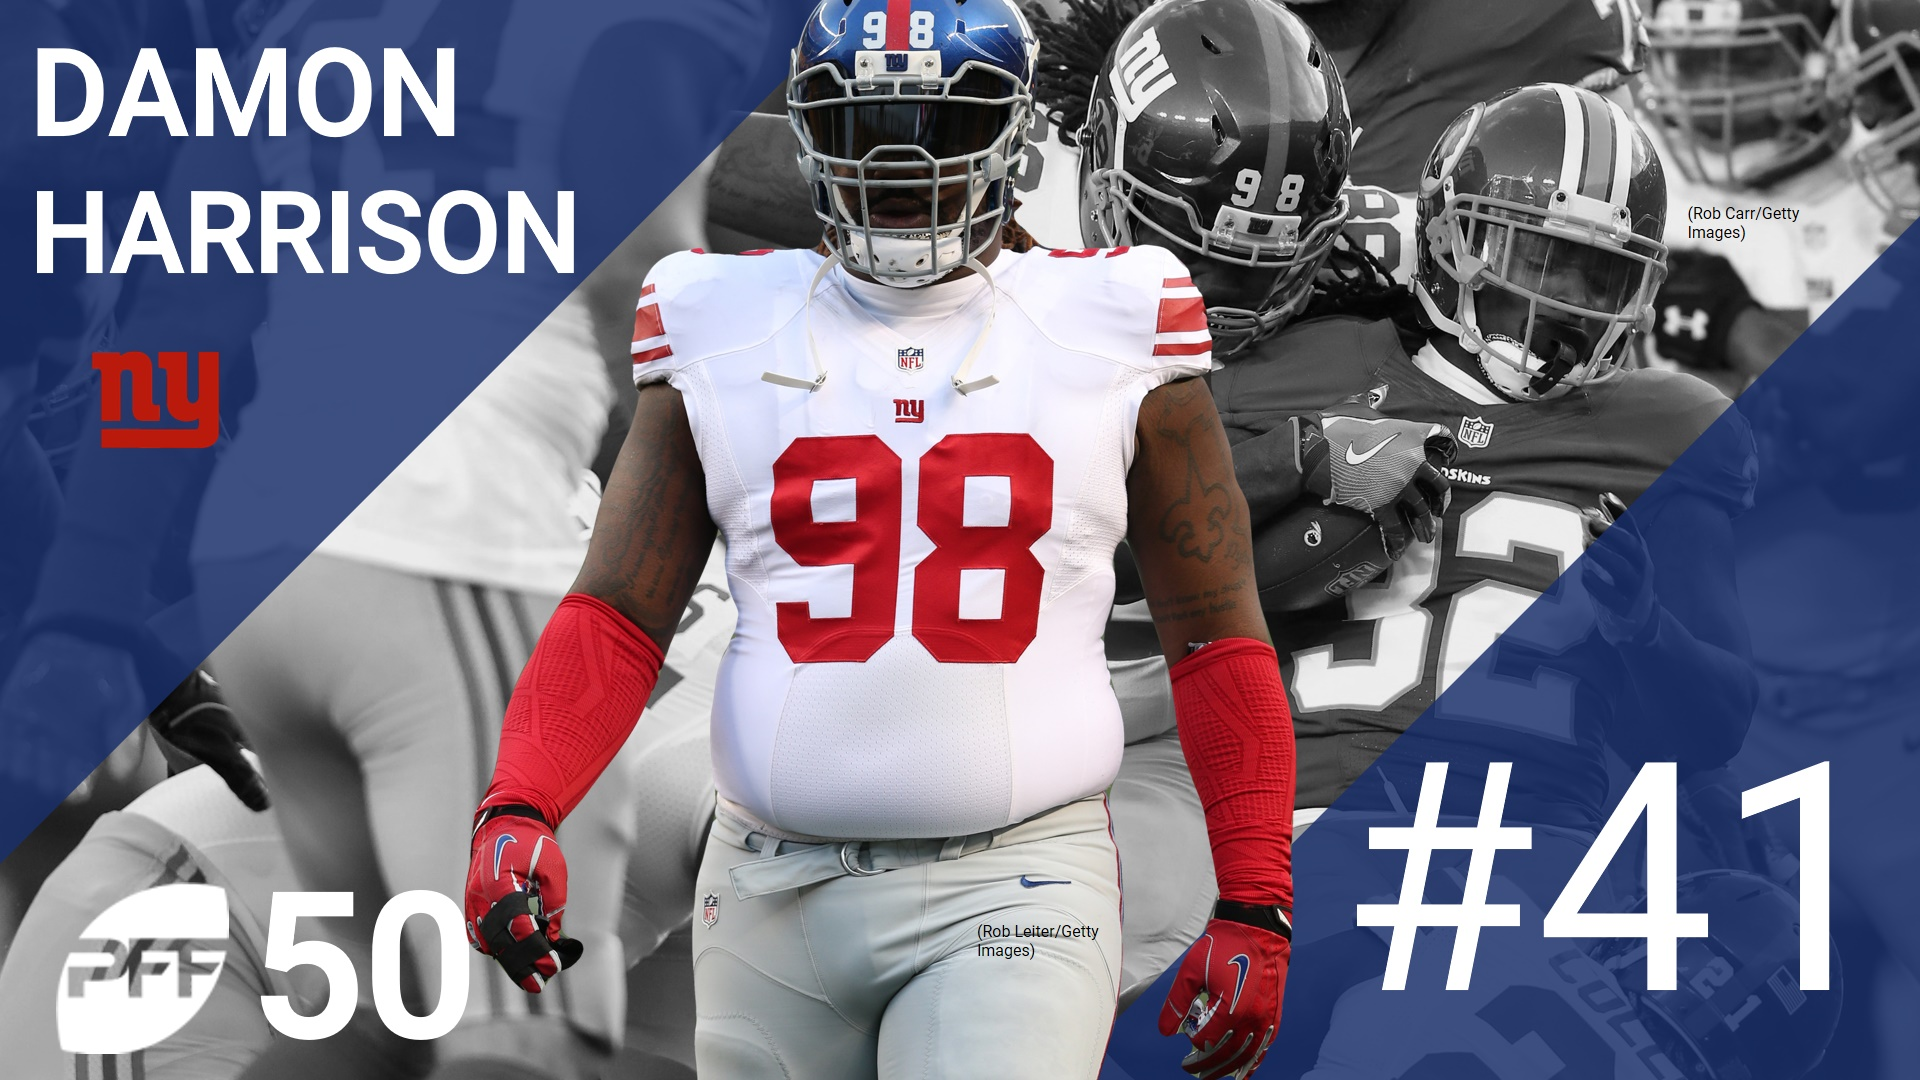 41 Damon Harrison